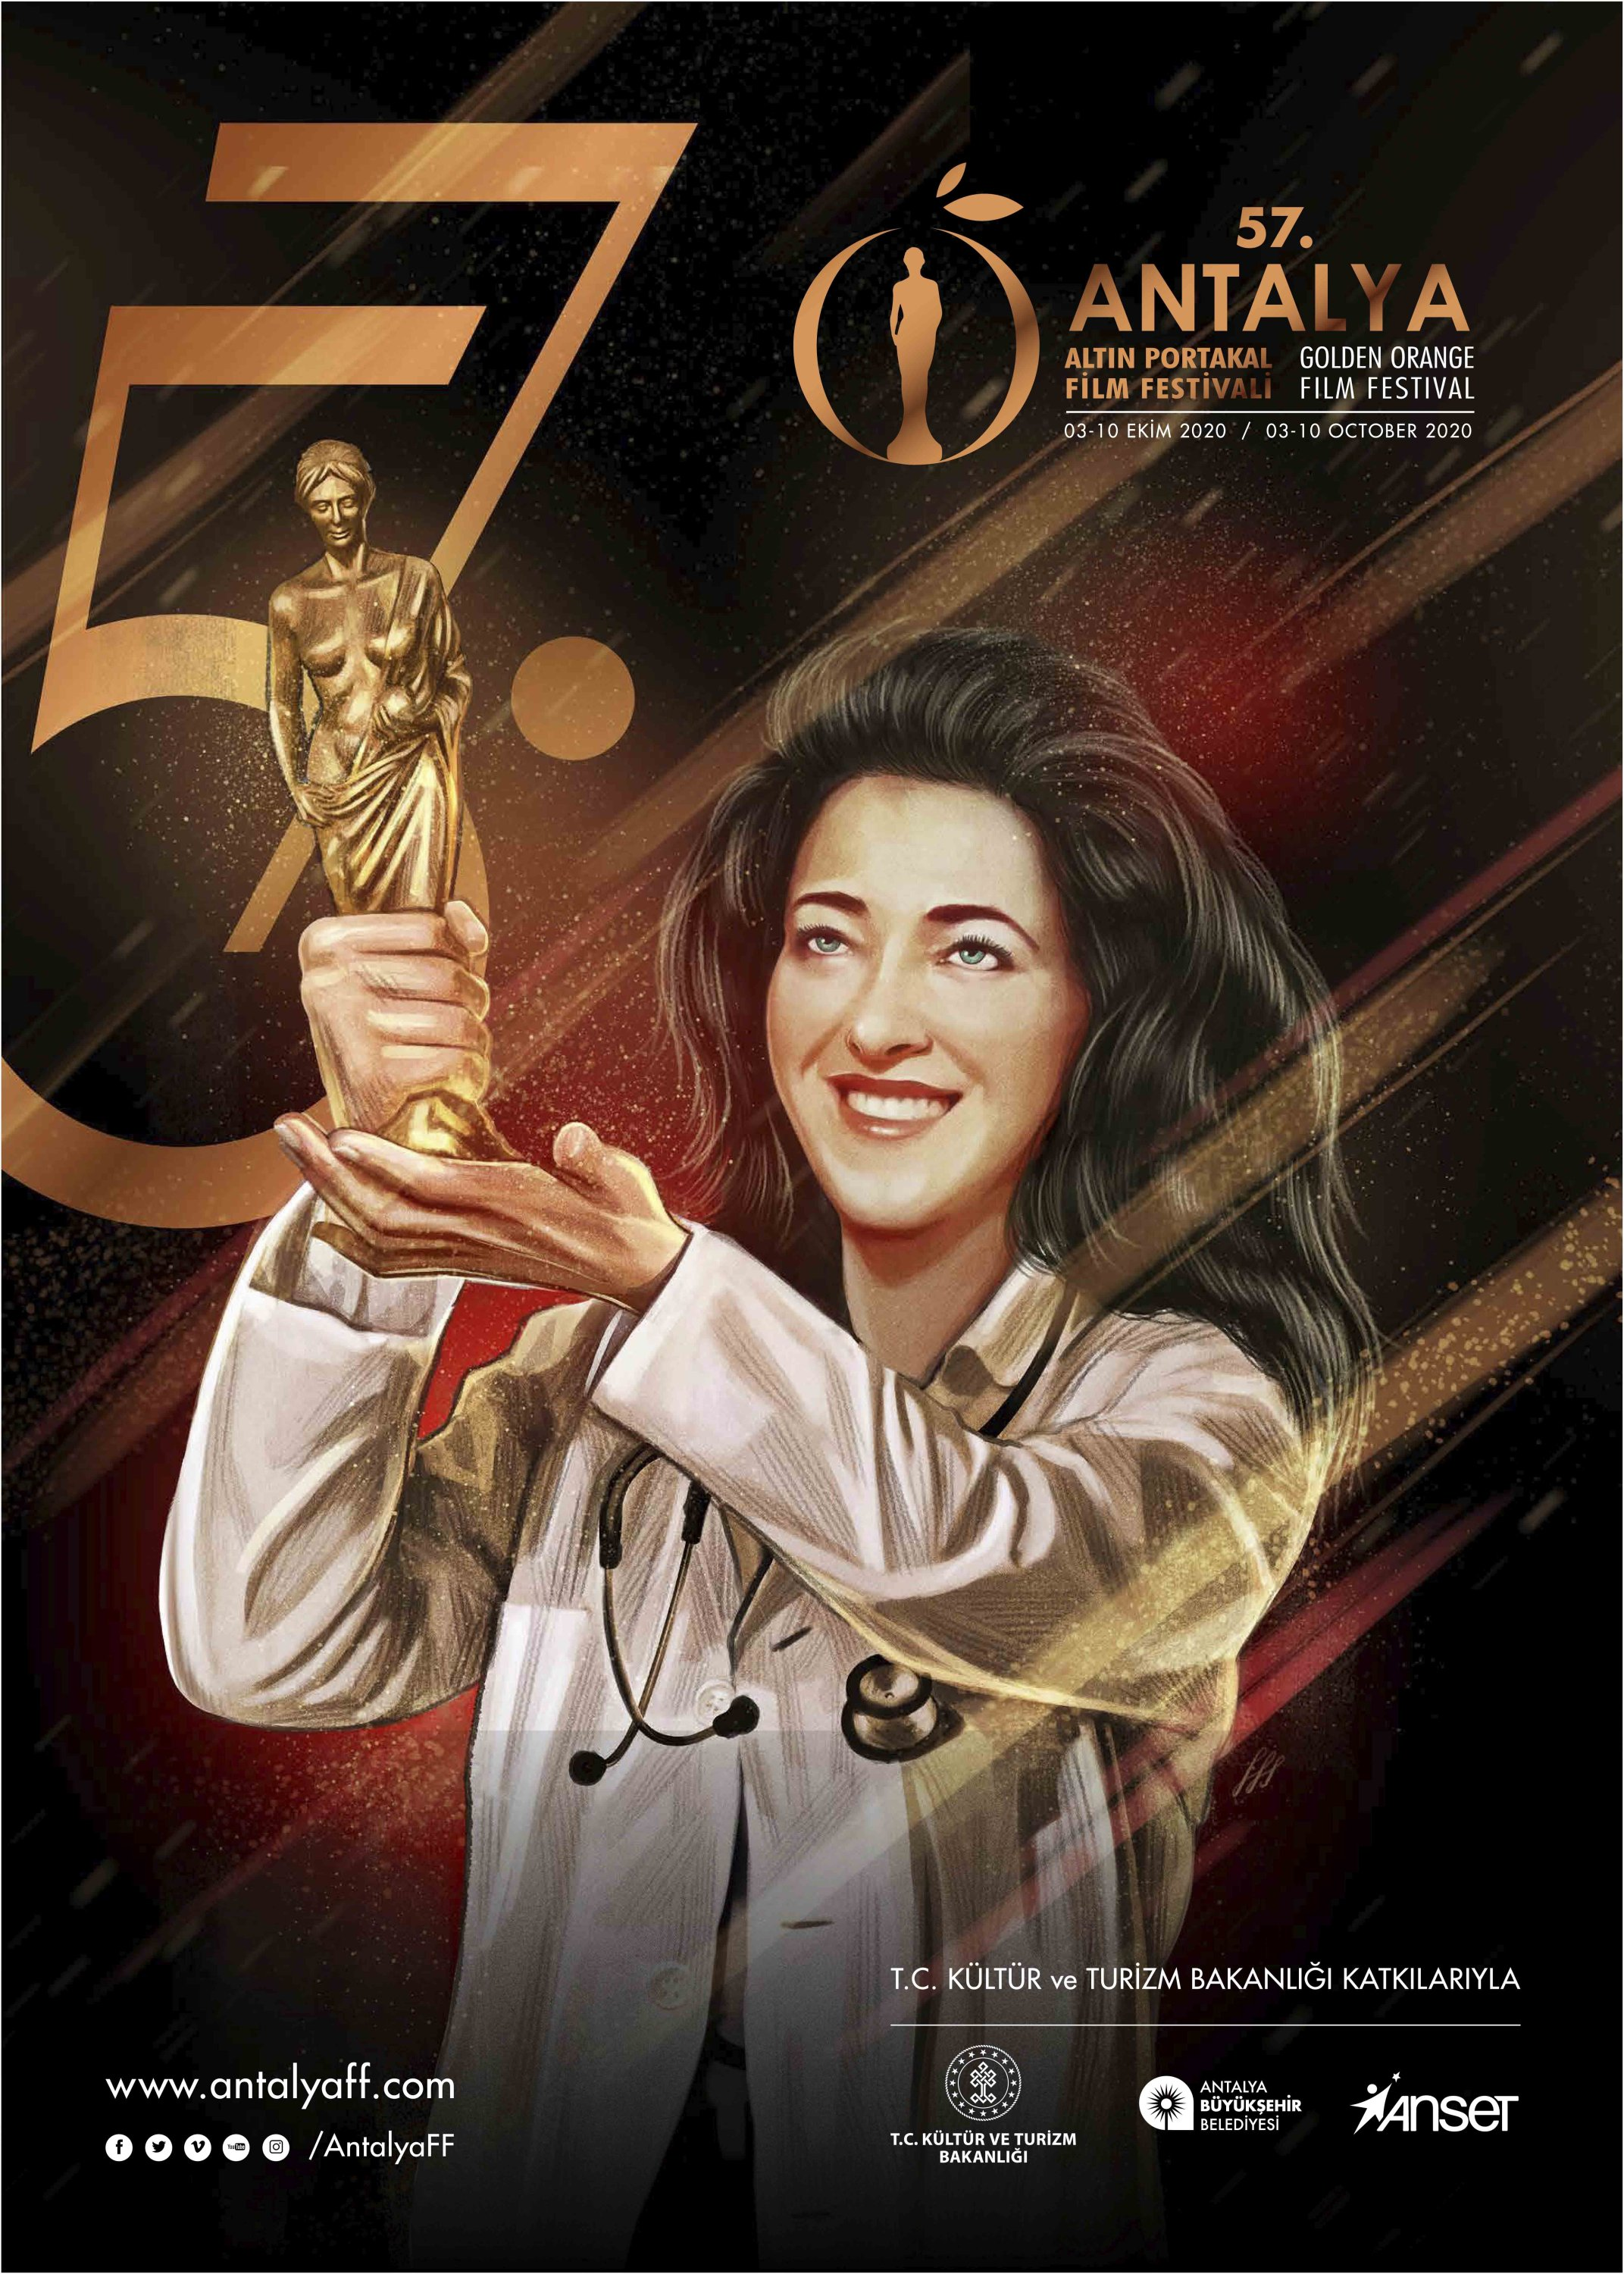 The poster of the 57th Antalya Film Festival shows a doctor holding the top award as a tribute to the medical staff fighting against the coronavirus.